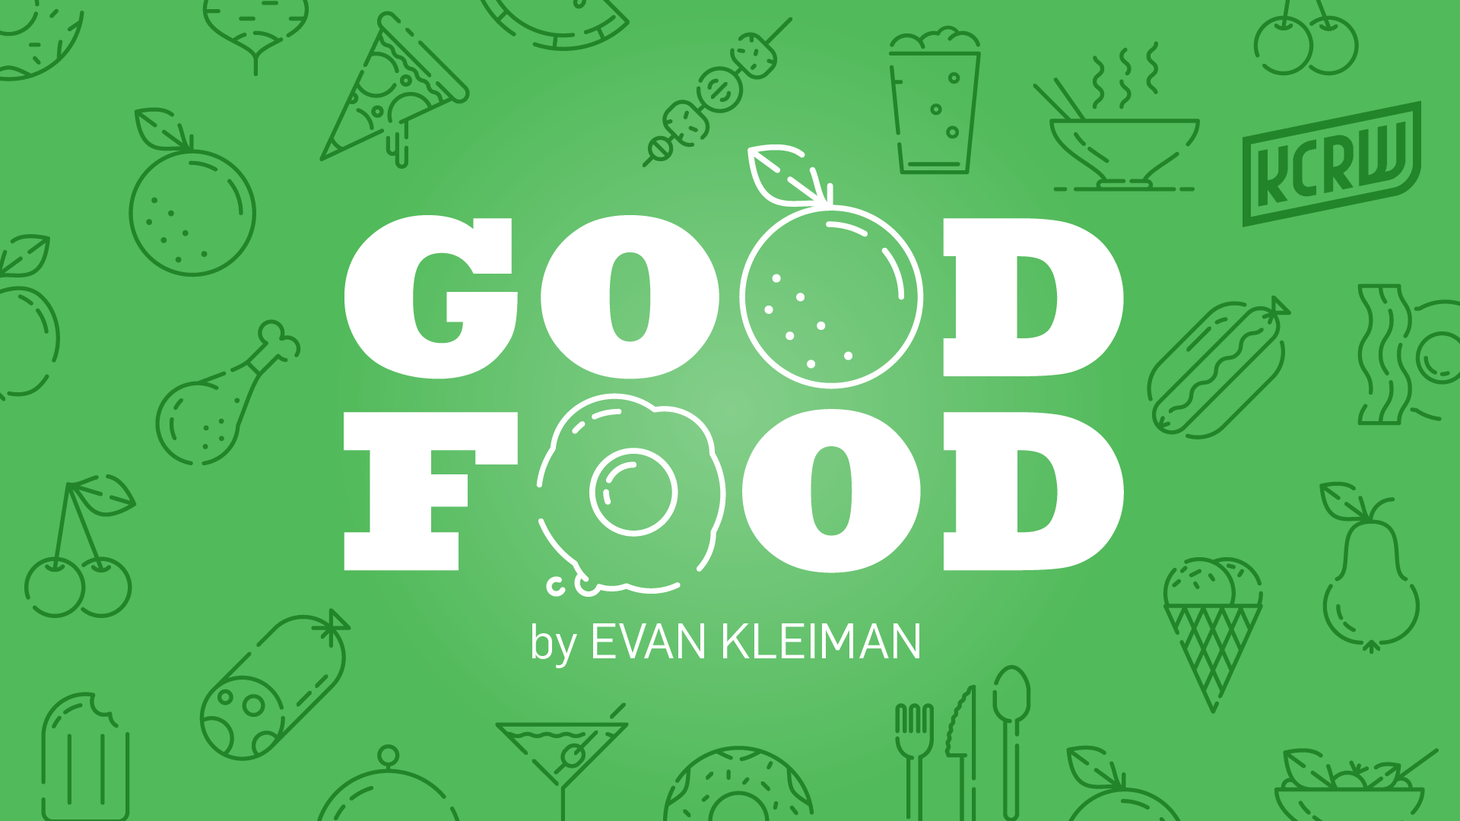 This Saturday on Good Food we talk all about food and health. From diet drugs that work or do not - to Chinese medicine - to the relationship between food and illness. Join host Evan Kleiman as she finds out how the foods we eat affect us. All this and the Farmer's Market report on Good Food.